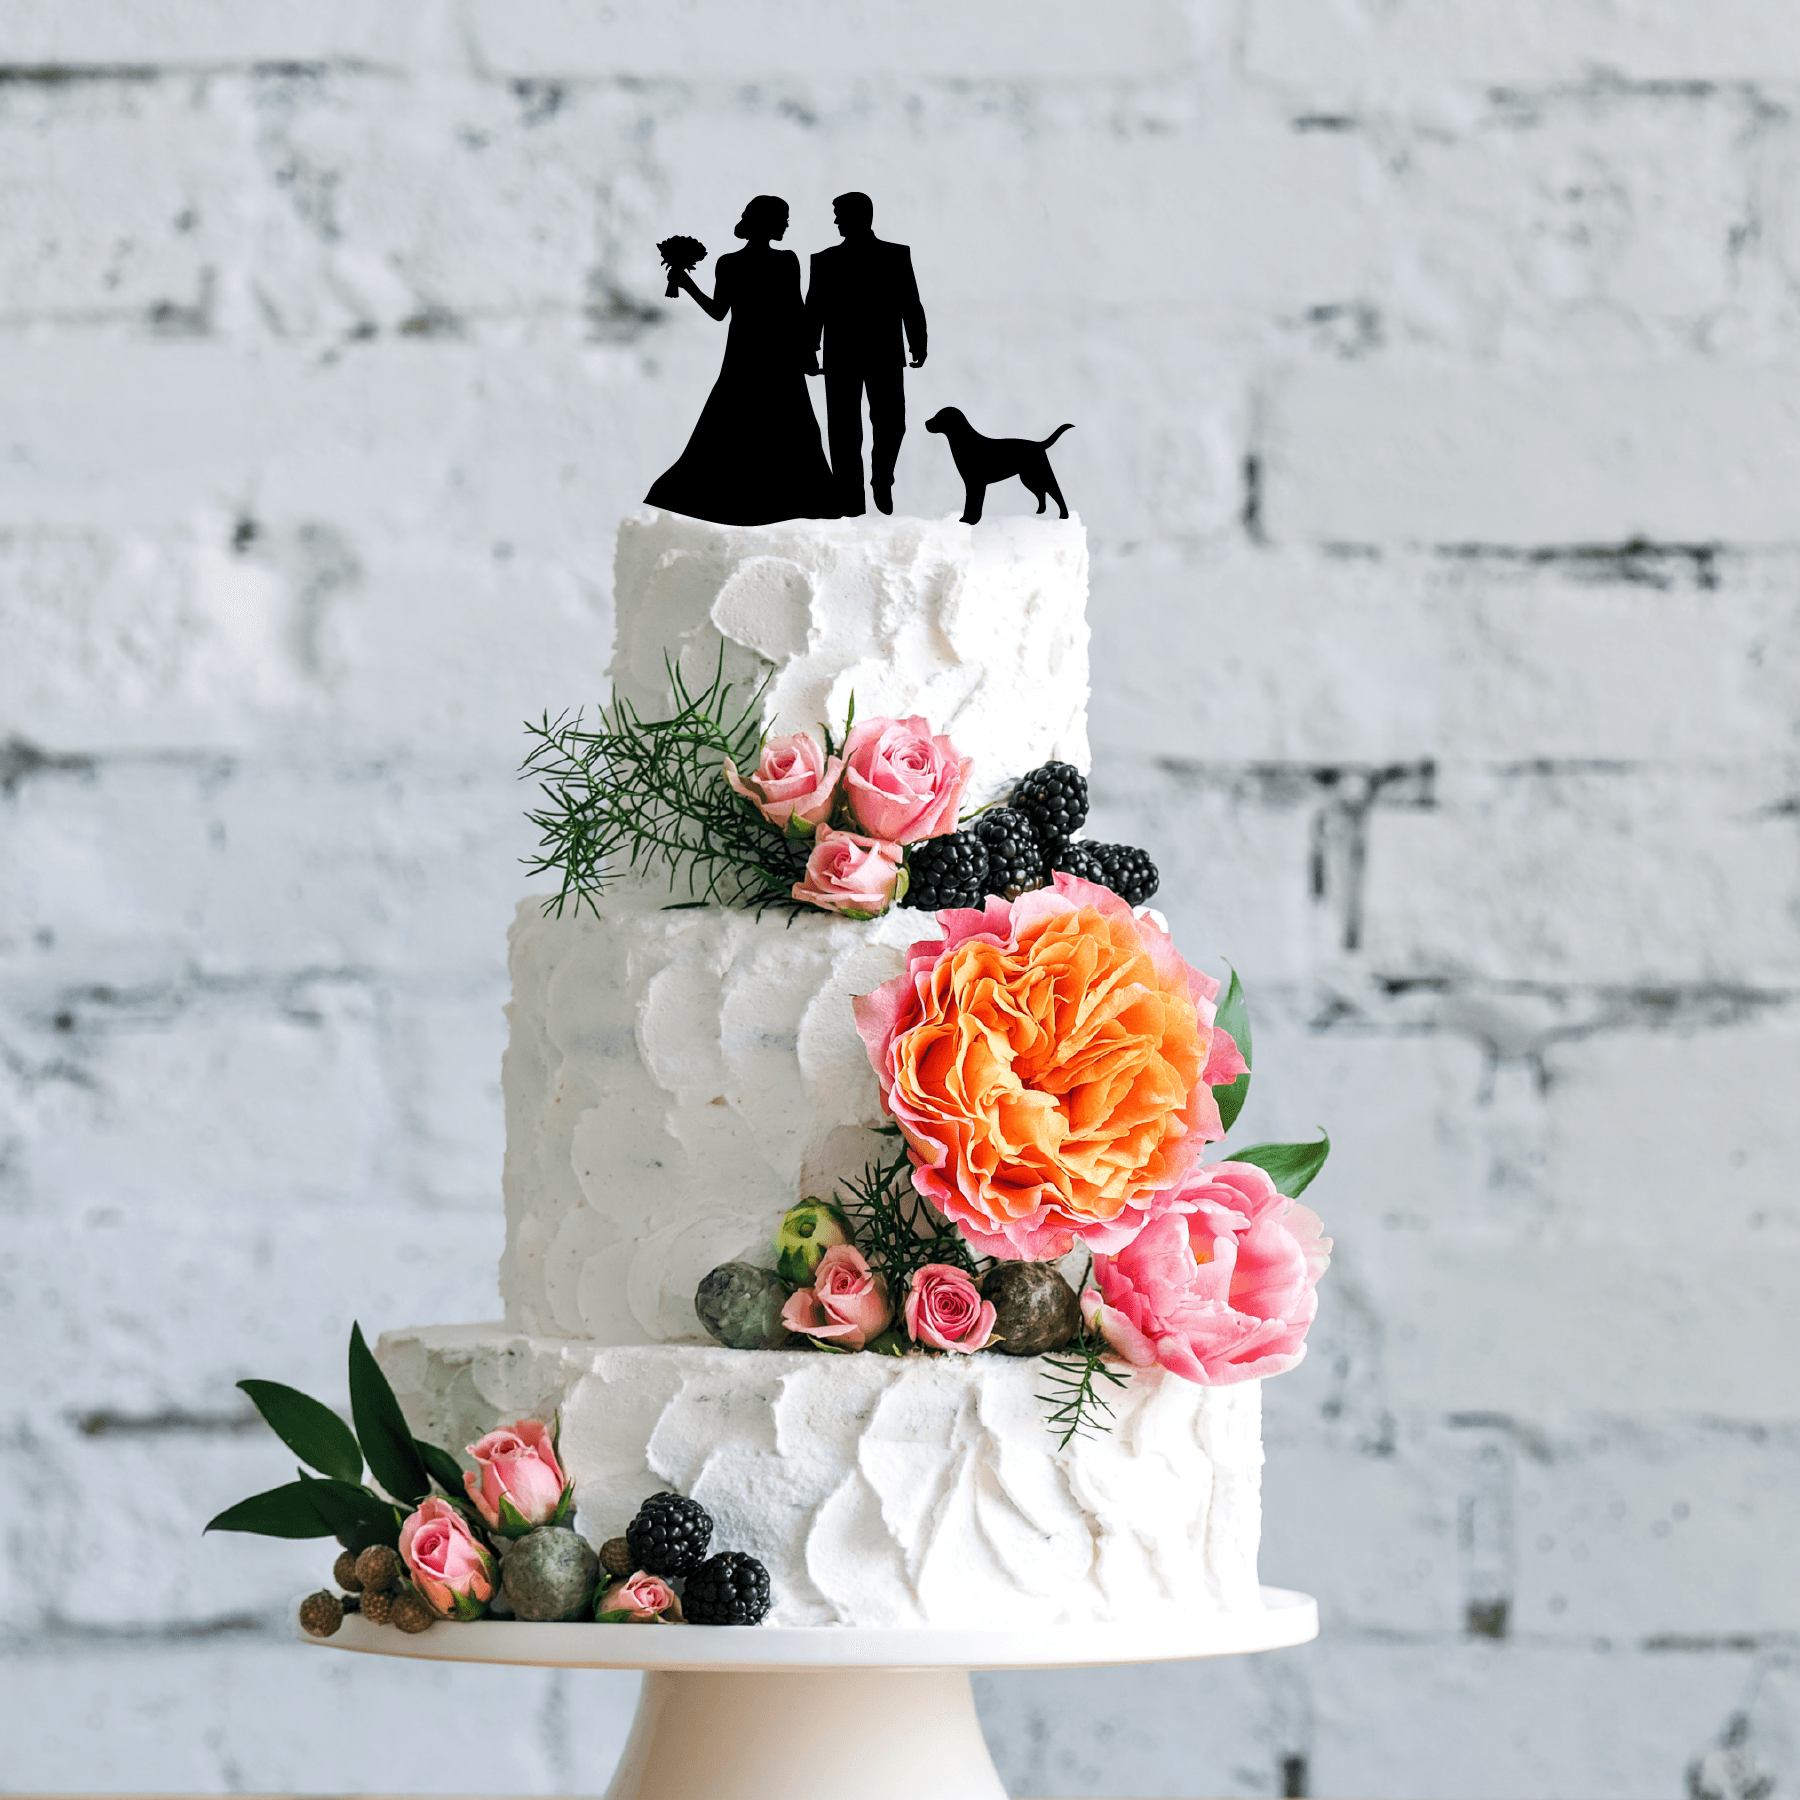 Wedding Couple Silhouette with Dog Cake Topper Wedding